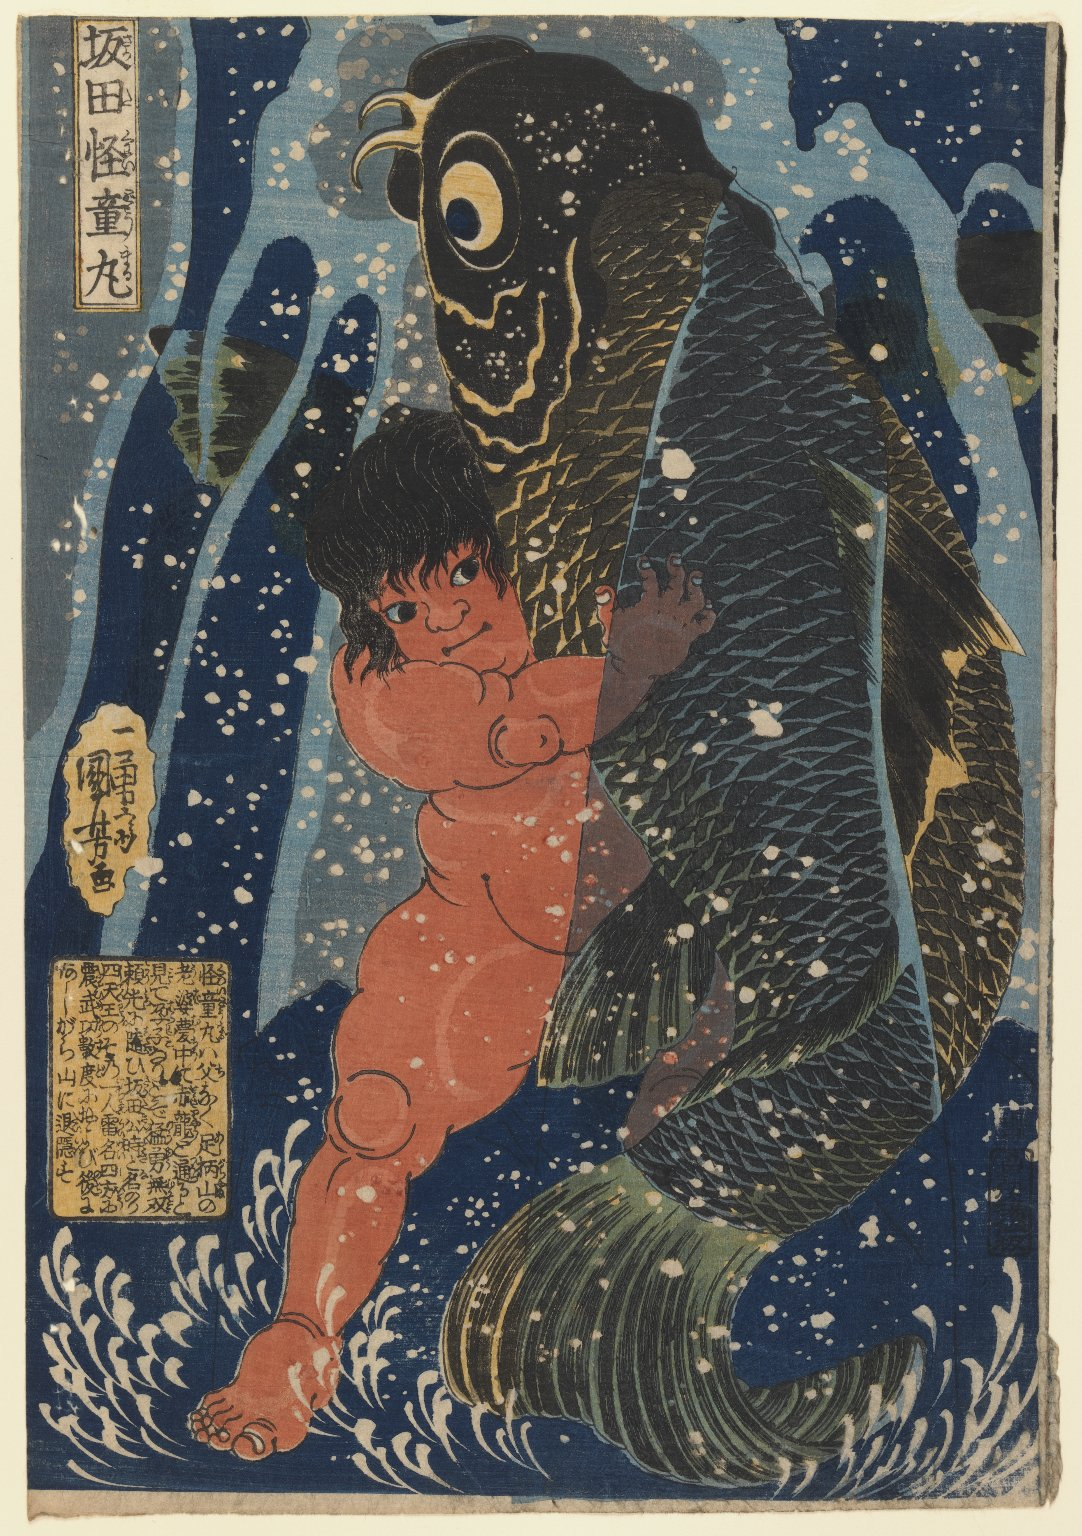 Brooklyn Museum: Oniwakamaru and the Giant Carp Fight Underwater